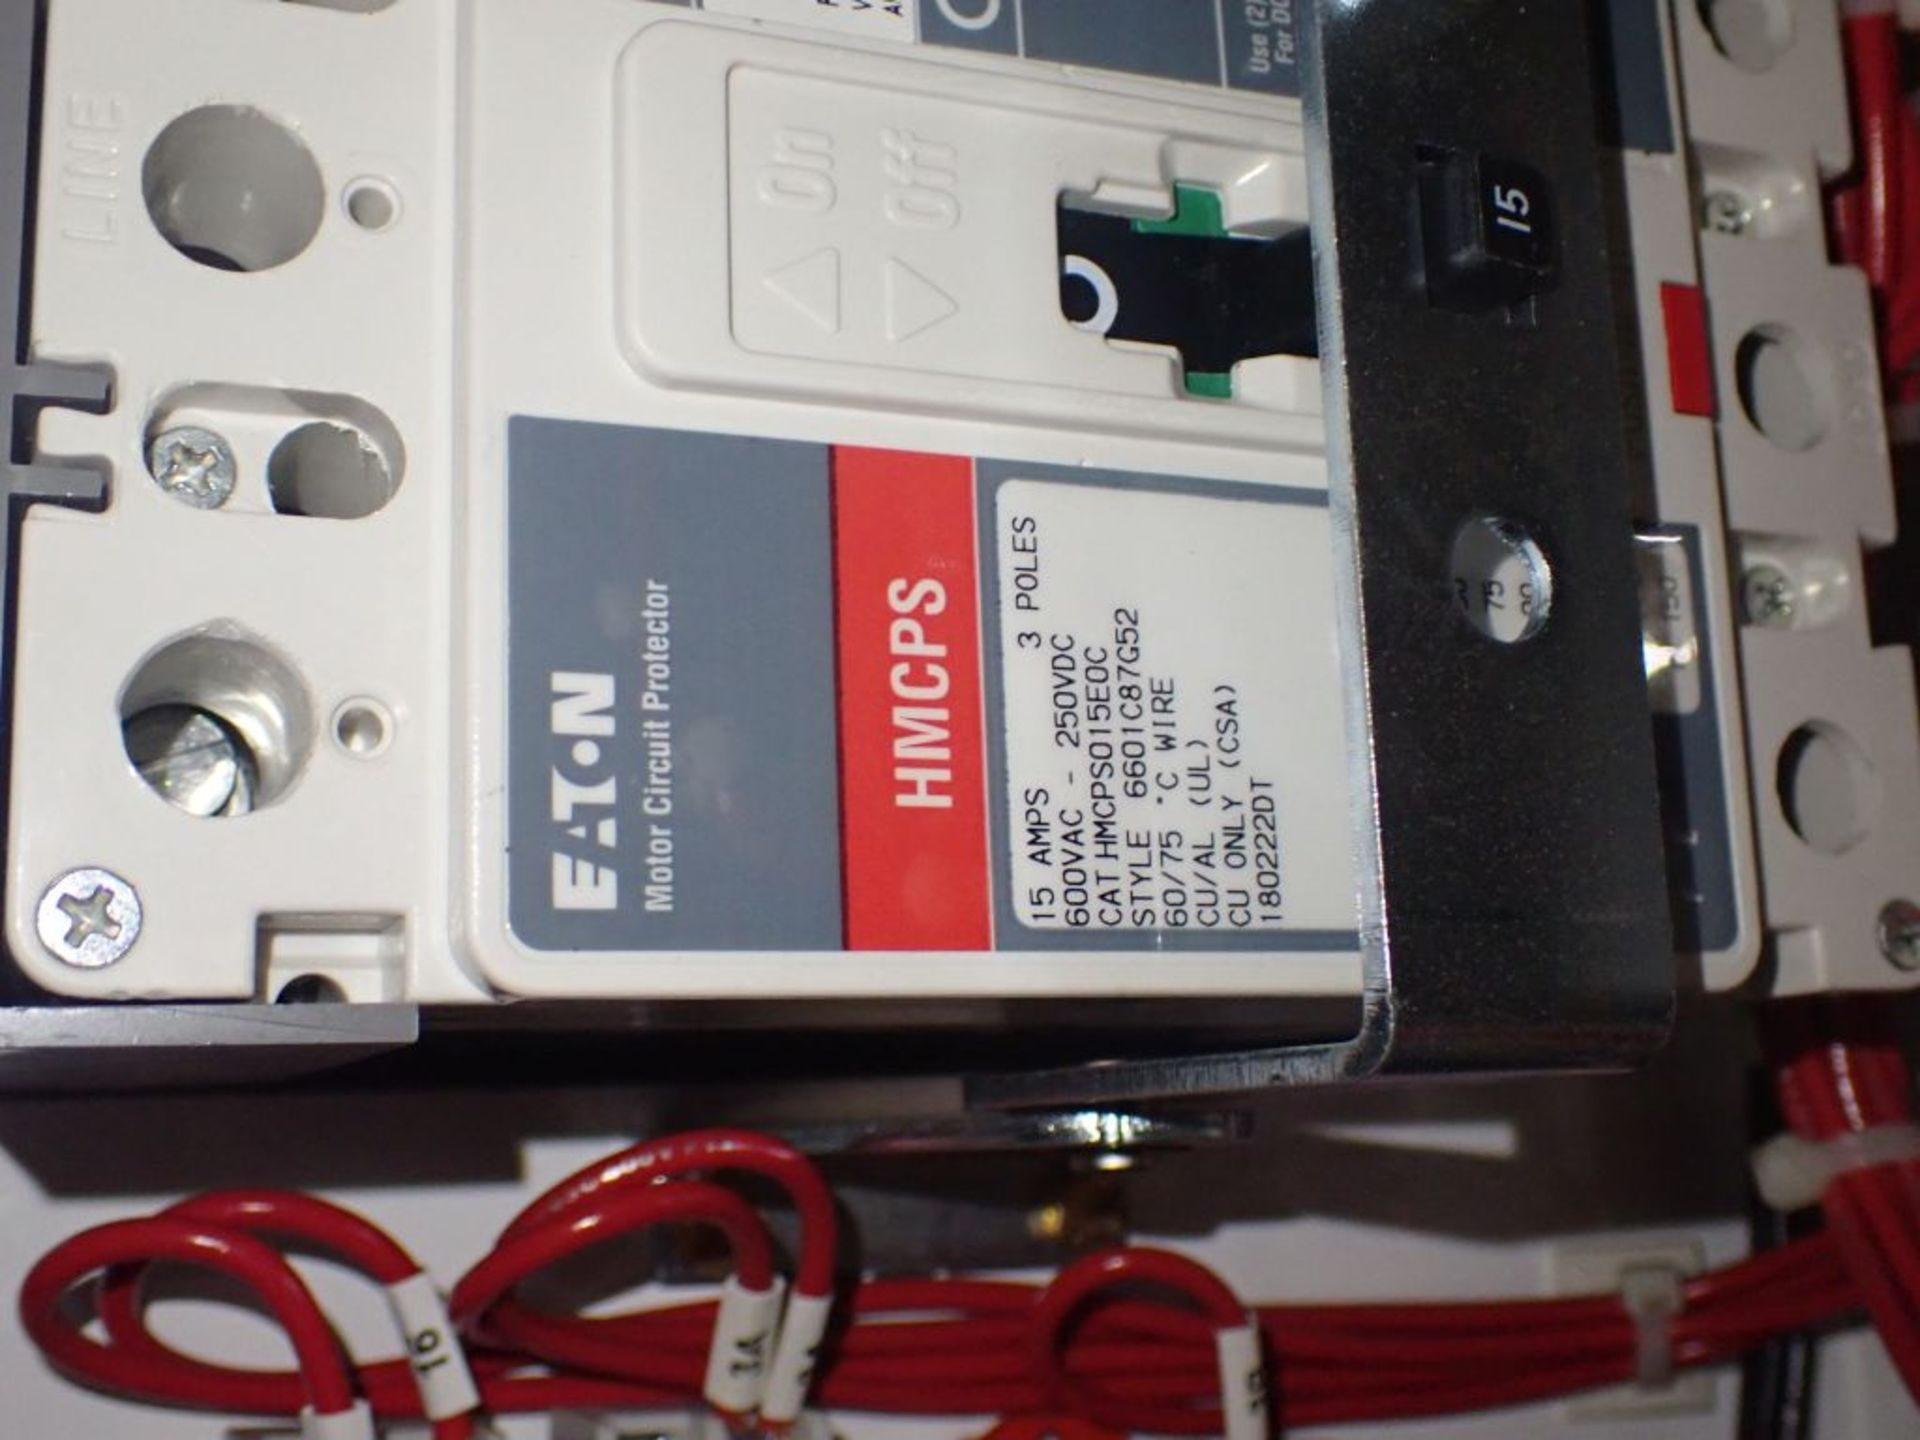 Eaton Freedom 2100 Series Motor Control Center   (2) F206-15A-10HP; (2) SVX900-50A, with Eaton AF - Image 35 of 48